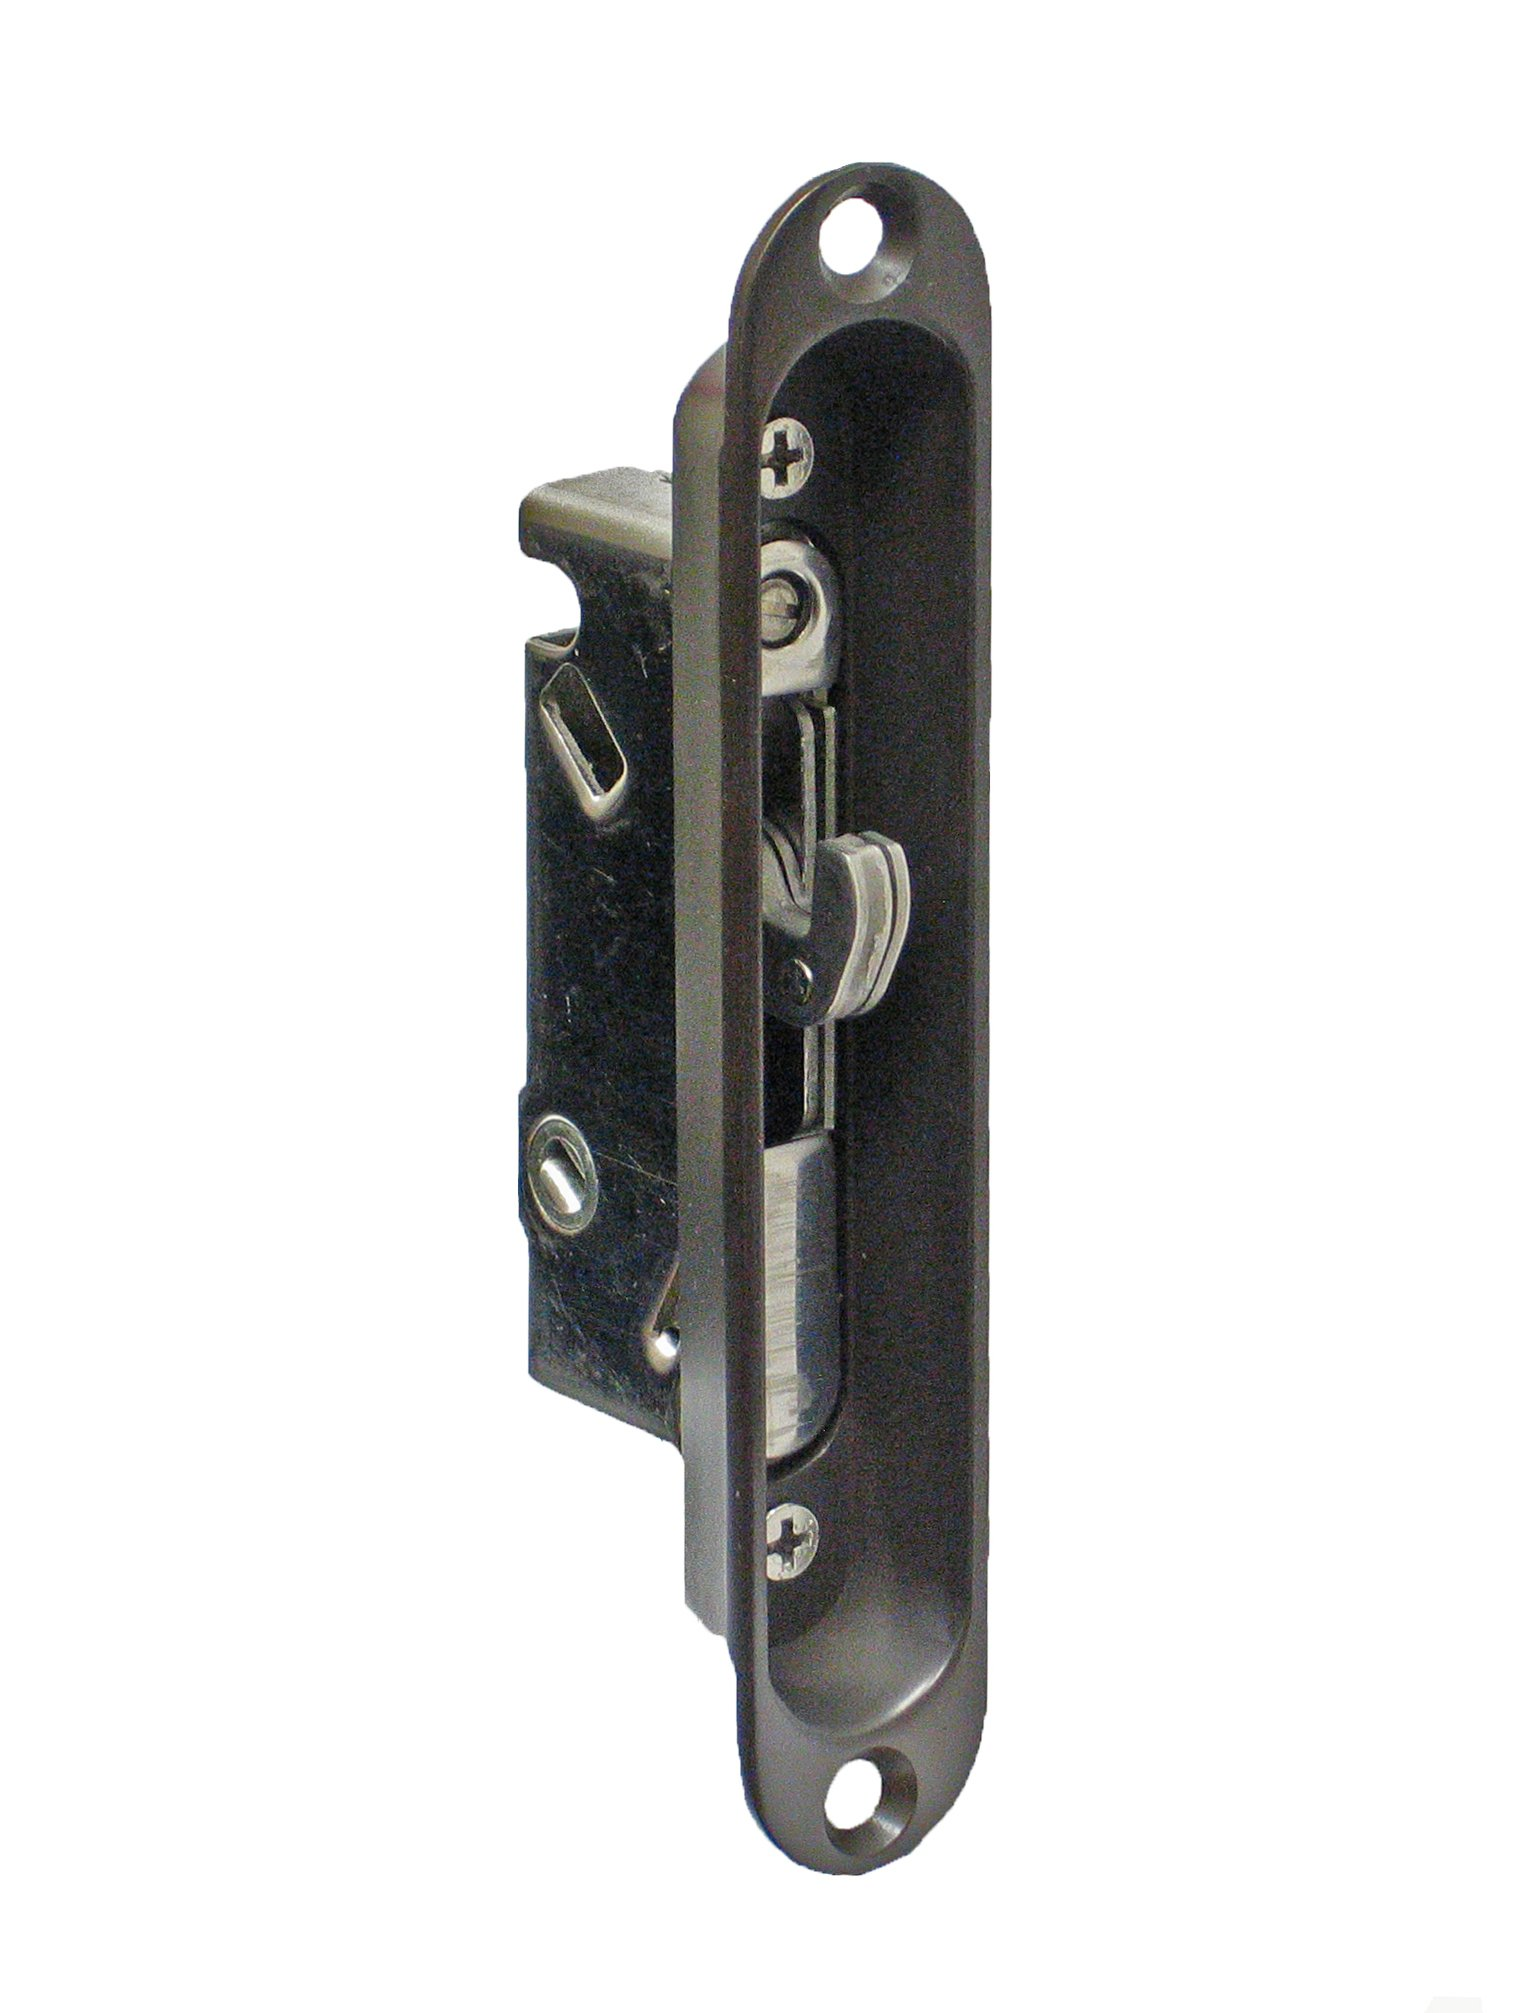 """FPL #3-45-SS Sliding Glass Door Replacement Mortise Lock with Recessed Adapter, 5-1/4"""" Screw Holes, 45 Degree Keyway, Stainless Steel- Oil Rubbed Bronze Finish"""